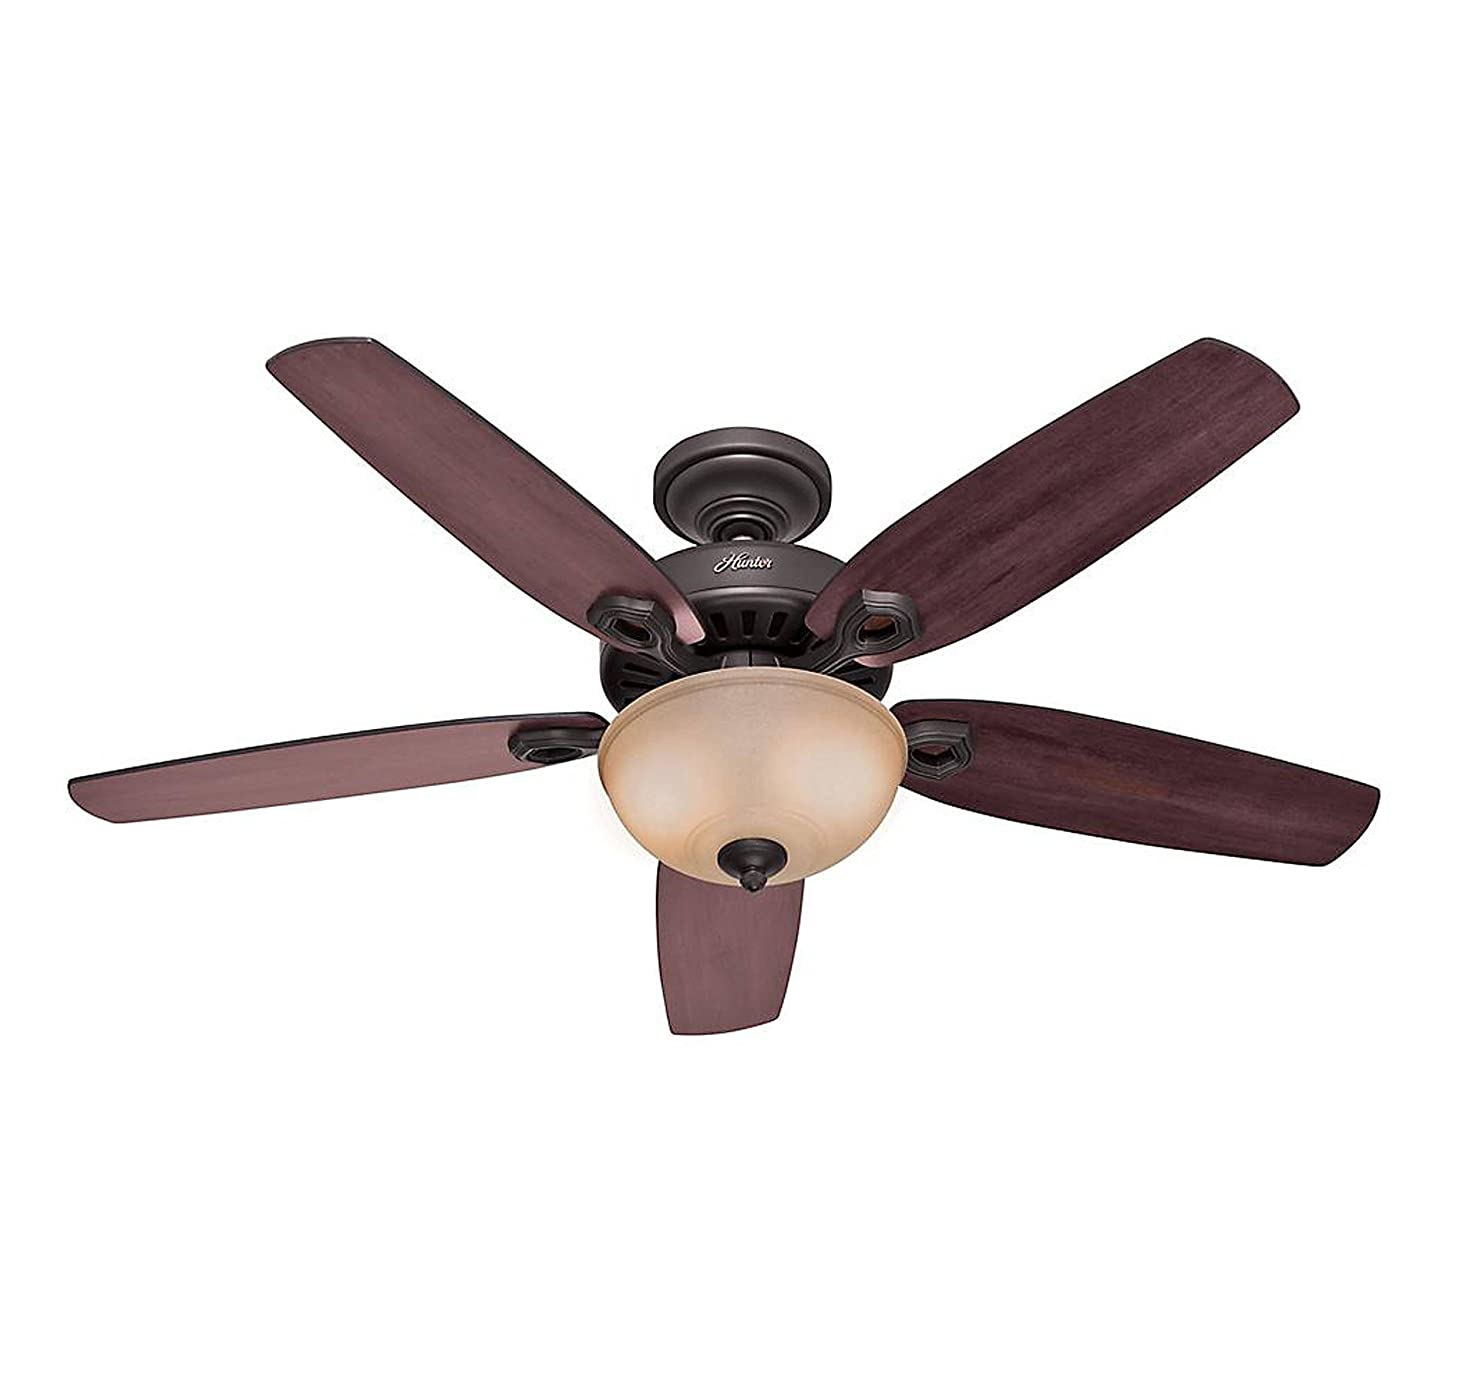 Hunter 53091 Builder Deluxe 5-Blade Single Light Ceiling Fan with Brazilian Cherry/Stained Oak Blades and Piped Toffee Glass Light Bowl, 52-Inch, New Bronze bpyvoulfo